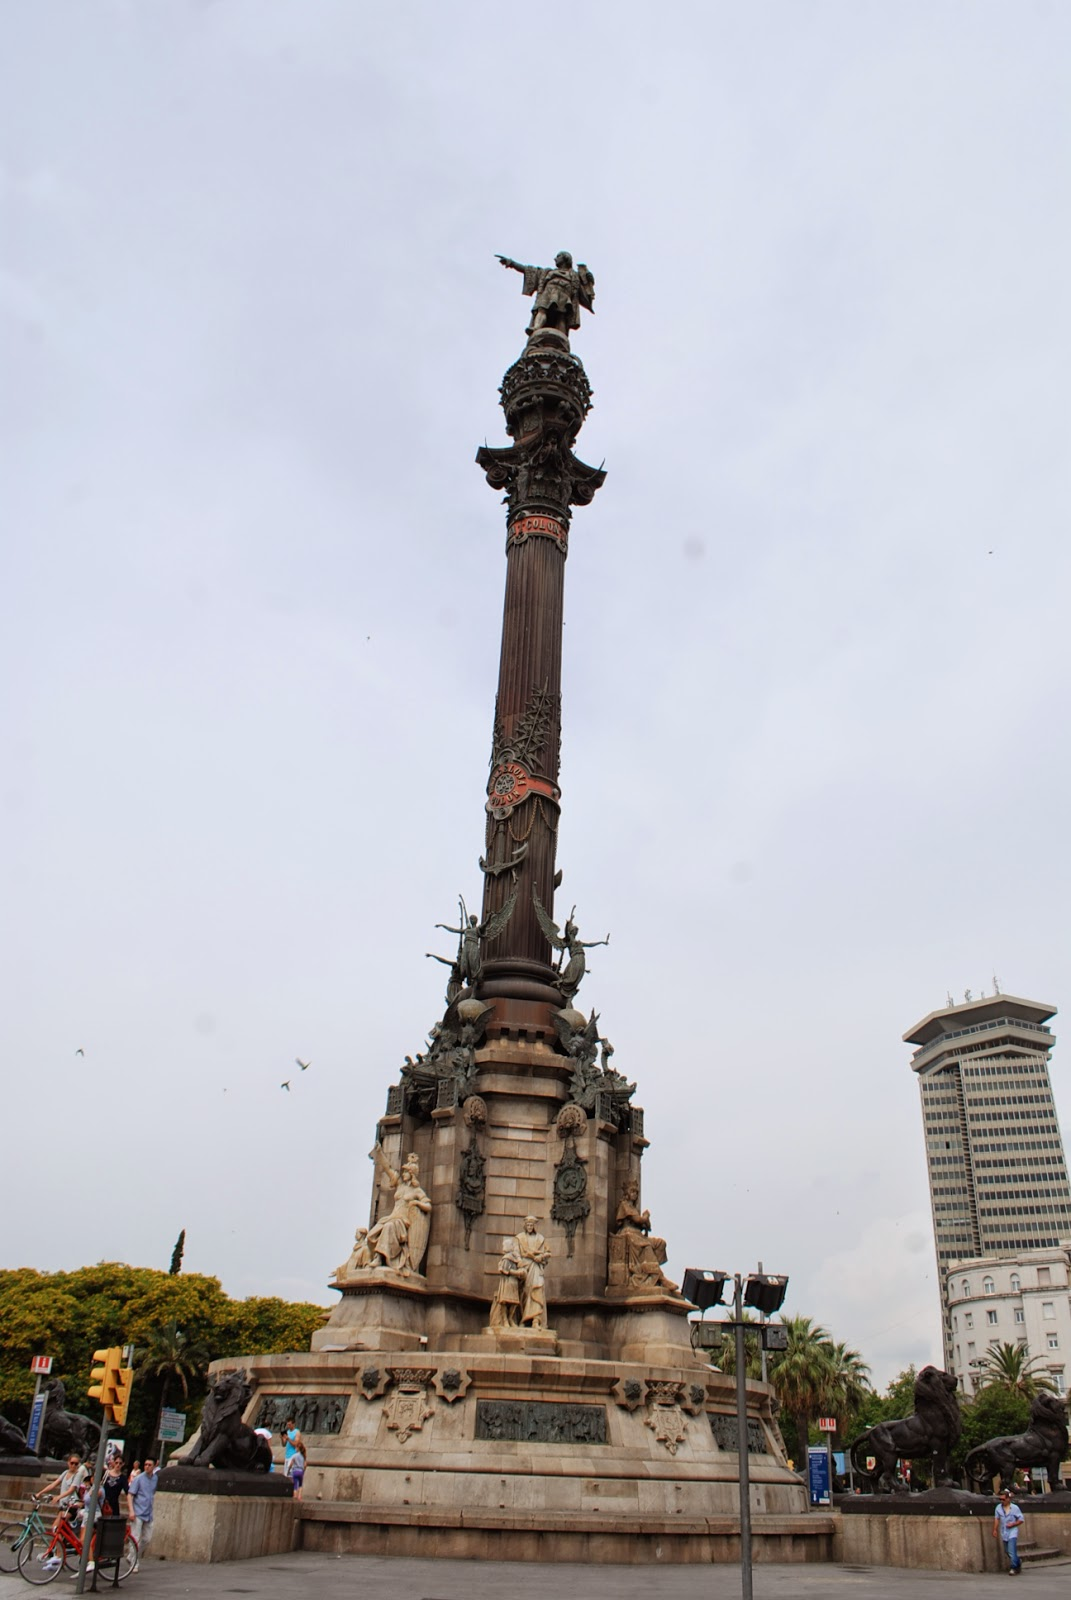 Монумент Колумбу, Барселона, Каталония, Испания. Monument of Columbus, Barcelona, Catalonia, Spain